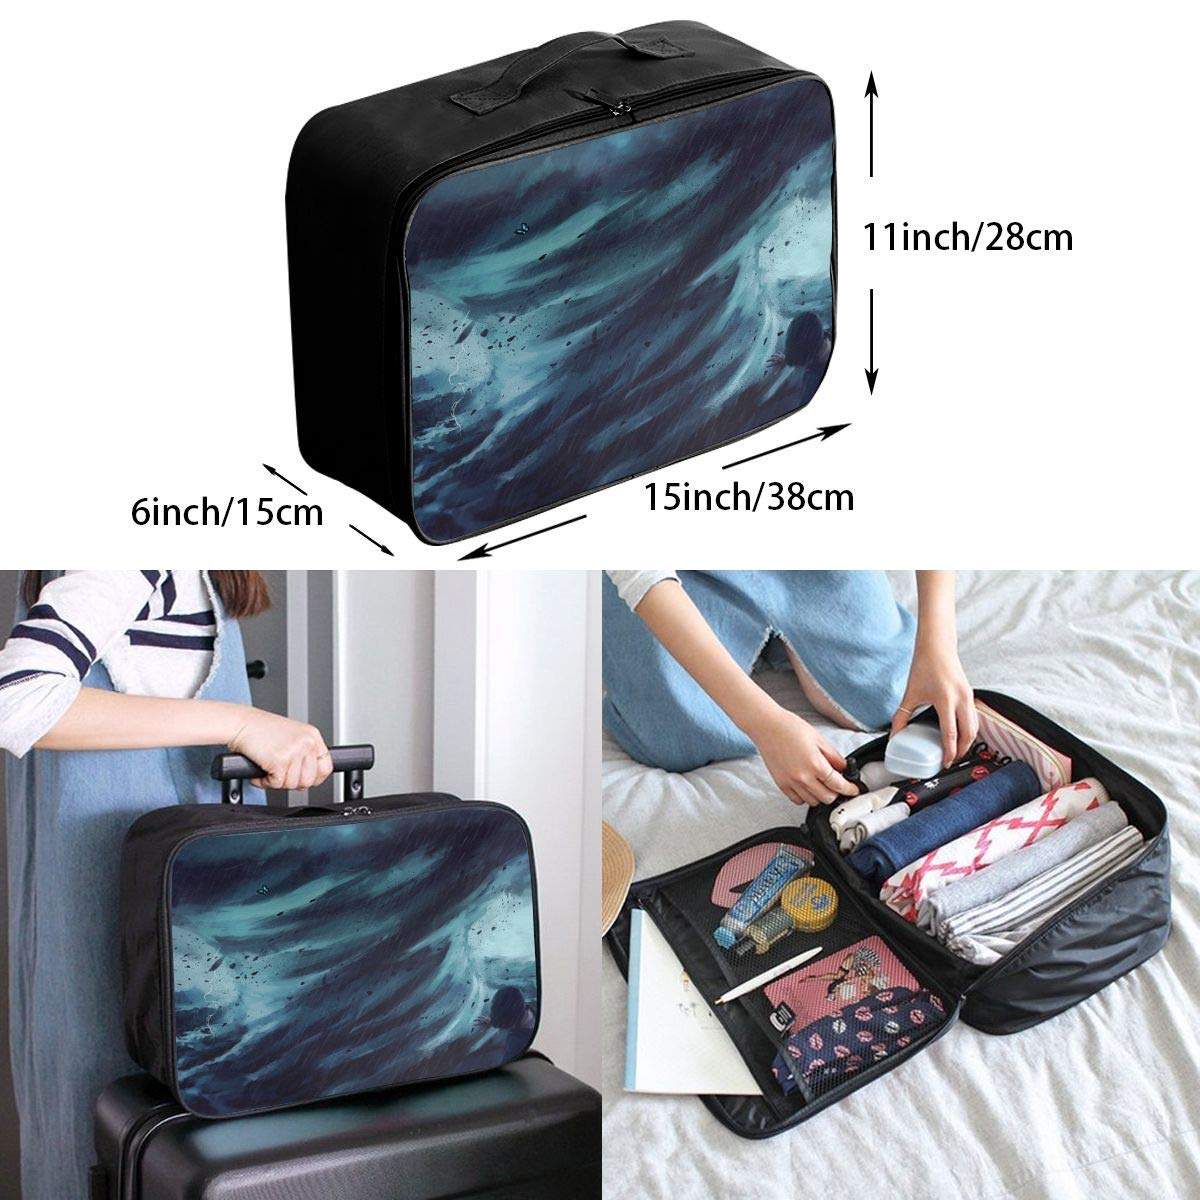 Travel Luggage Duffle Bag Lightweight Portable Handbag Tornado Print Large Capacity Waterproof Foldable Storage Tote